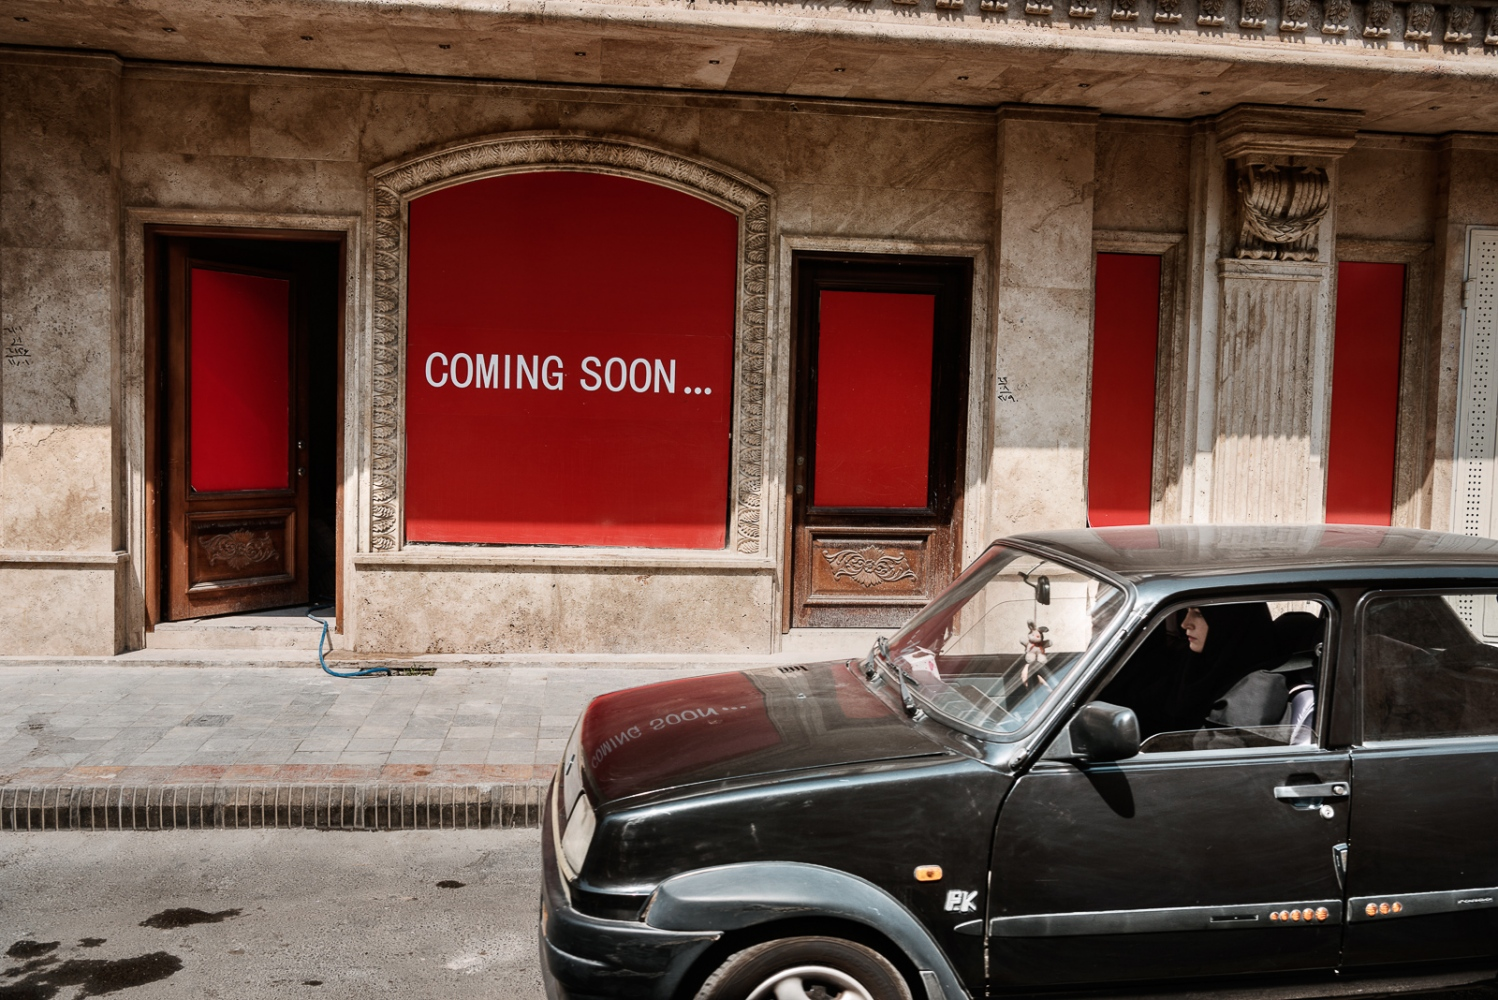 Art and Documentary Photography - Loading 36_IRAN_COMING_SOON.jpg